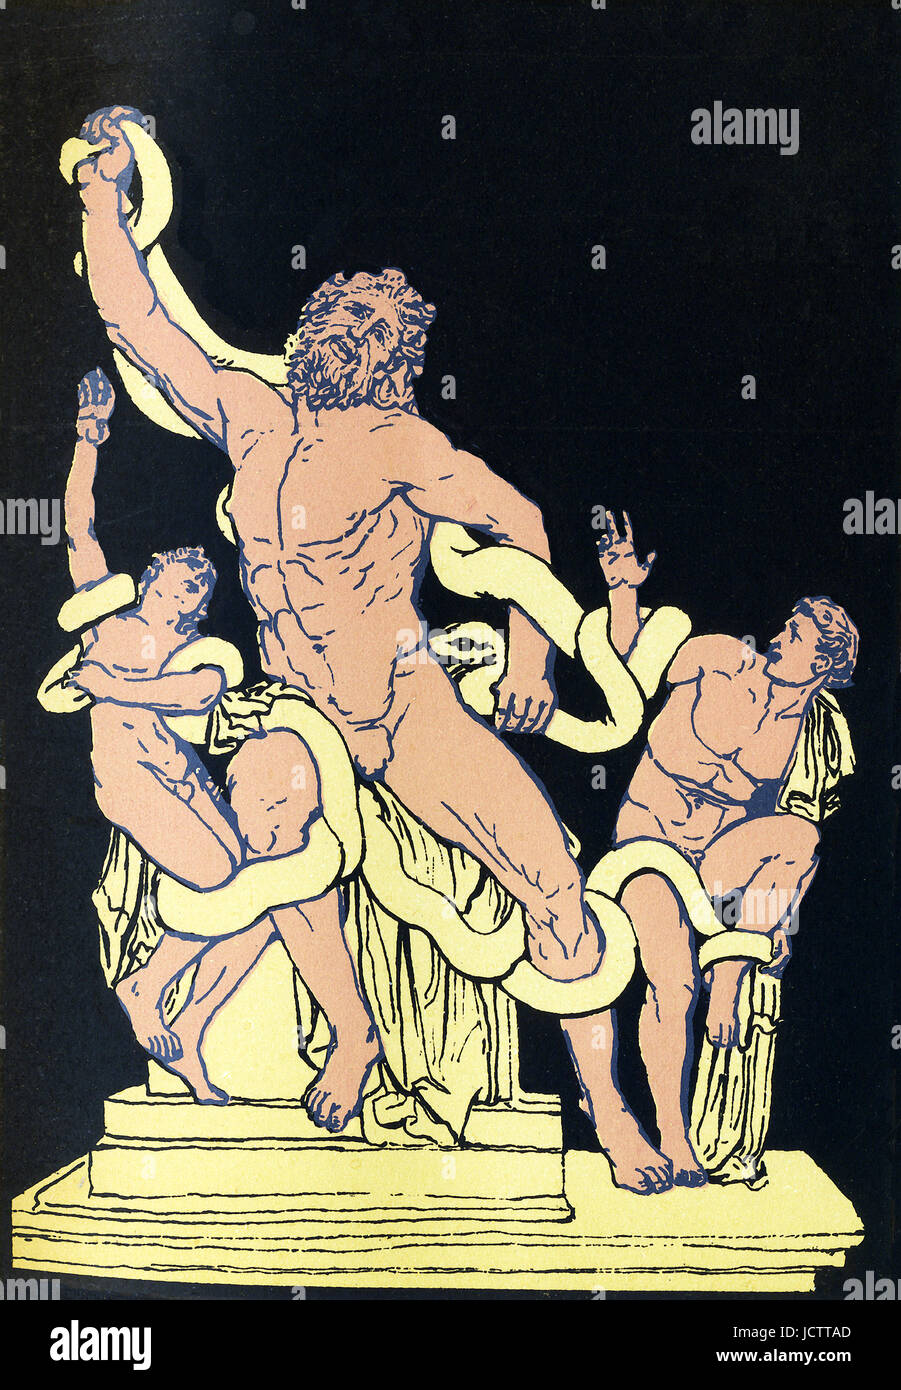 According to Greek mythology, Laocoon warned the Trojans about bringing the wooden horse fashioned by the Greeks - Stock Image